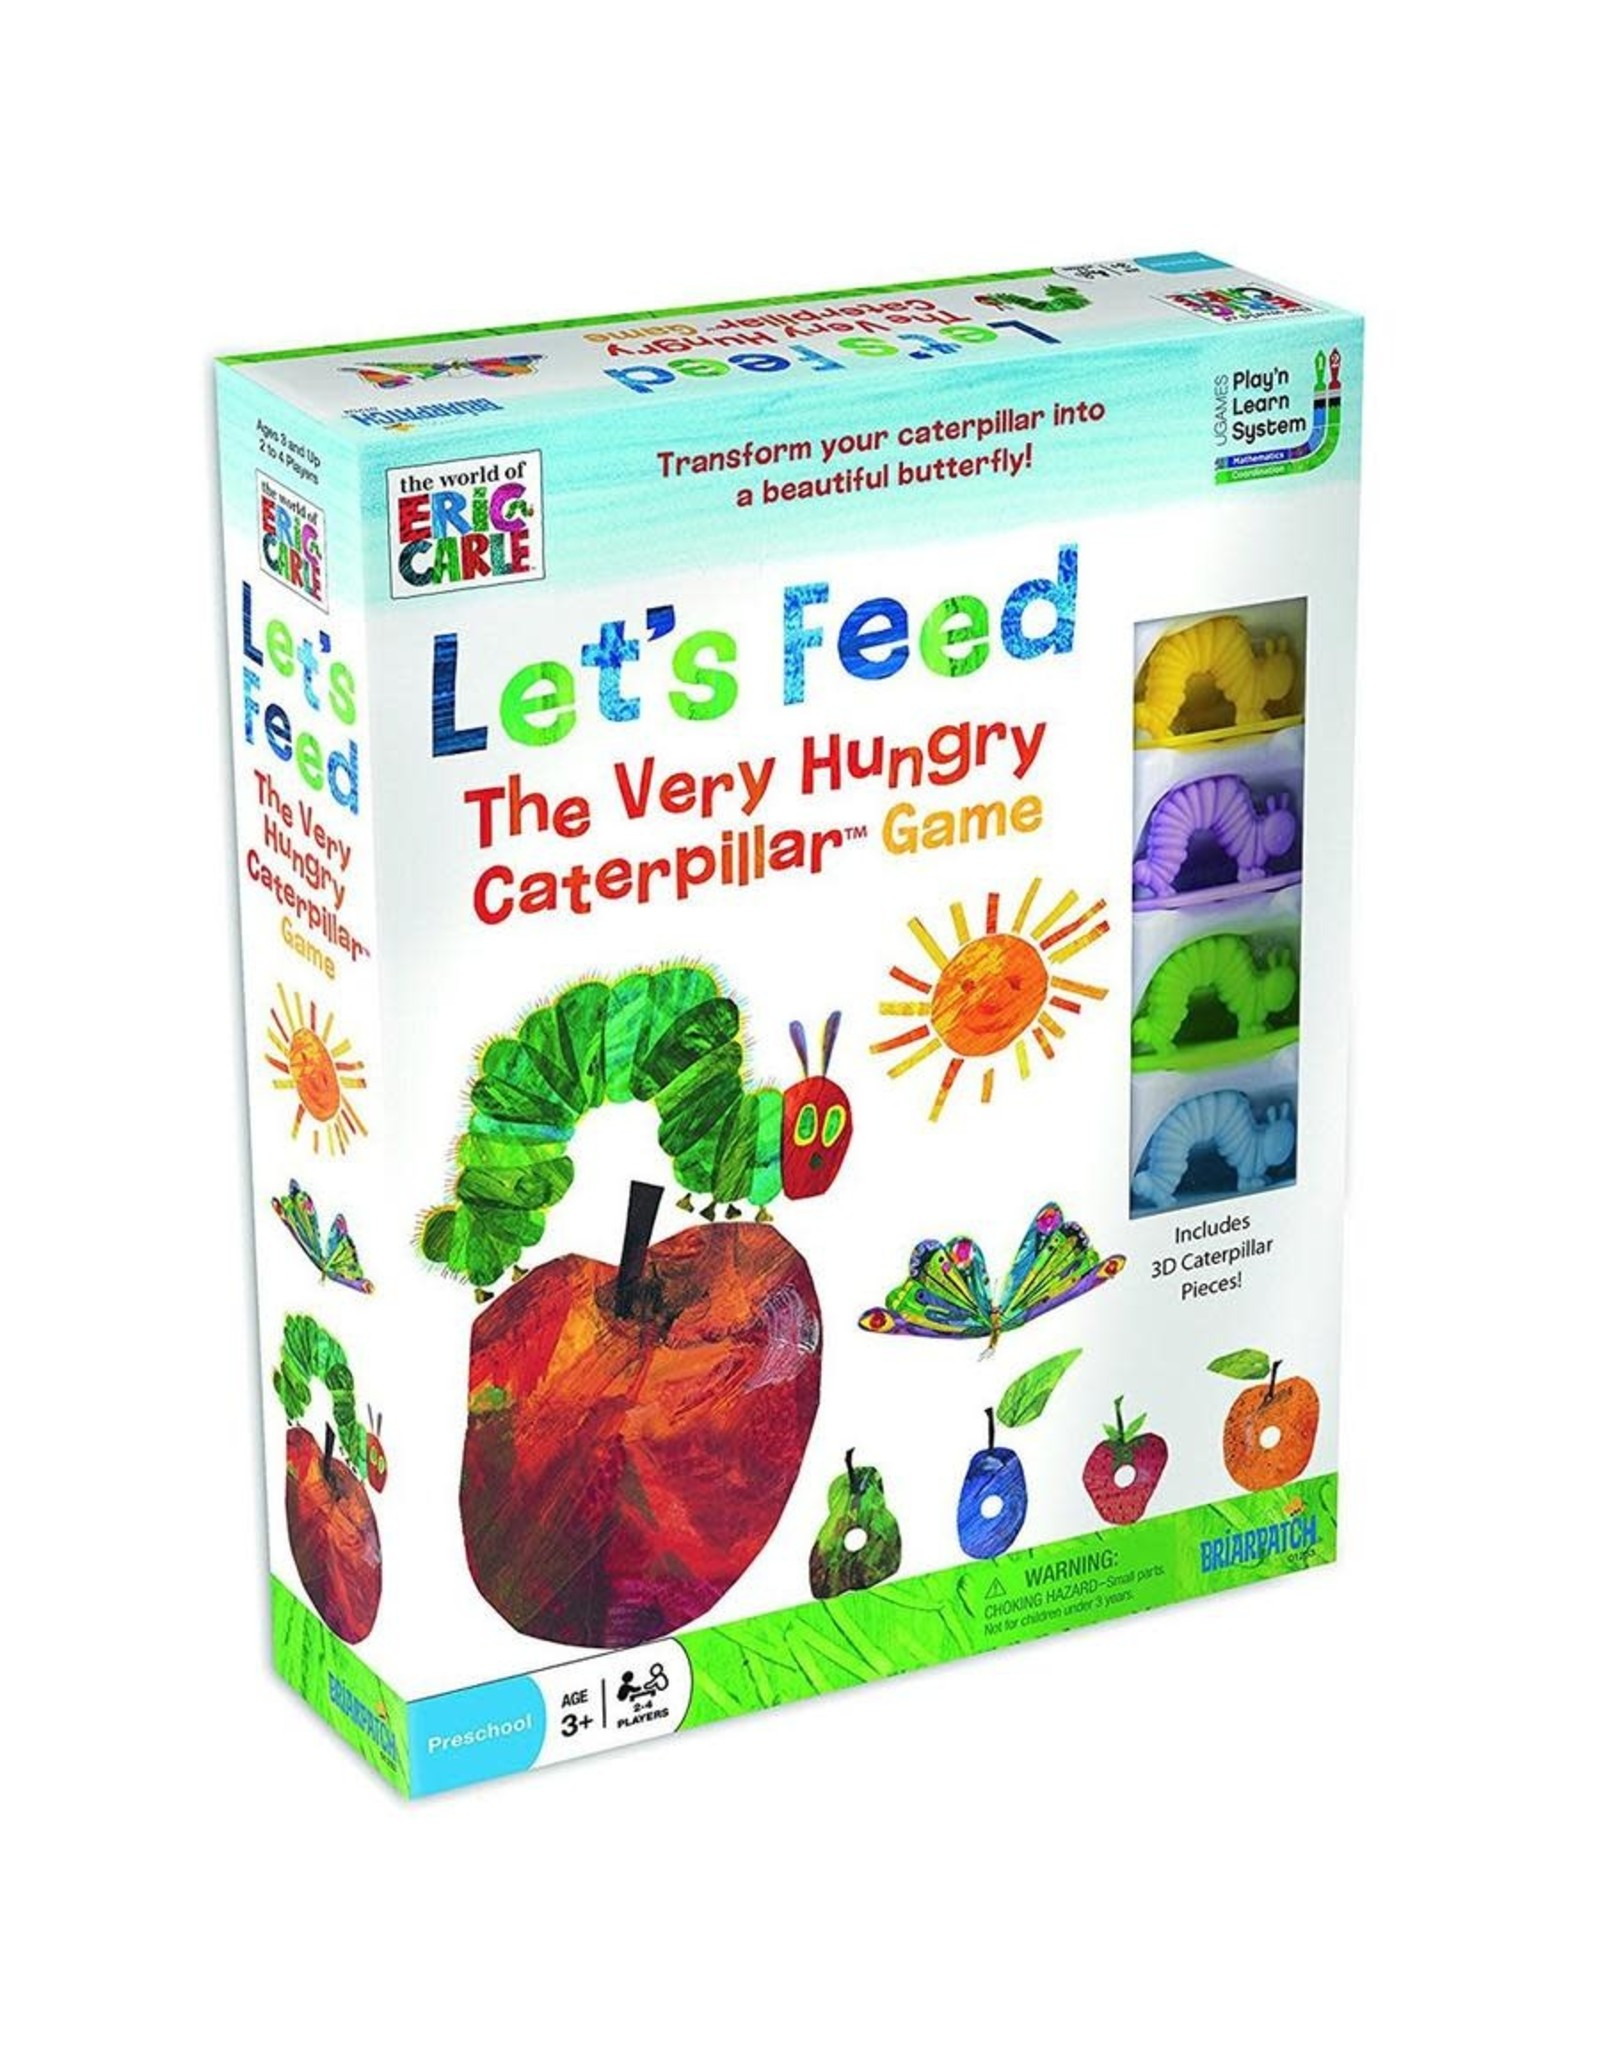 University Games Let's Feed the Very Hungry Caterpillar Game